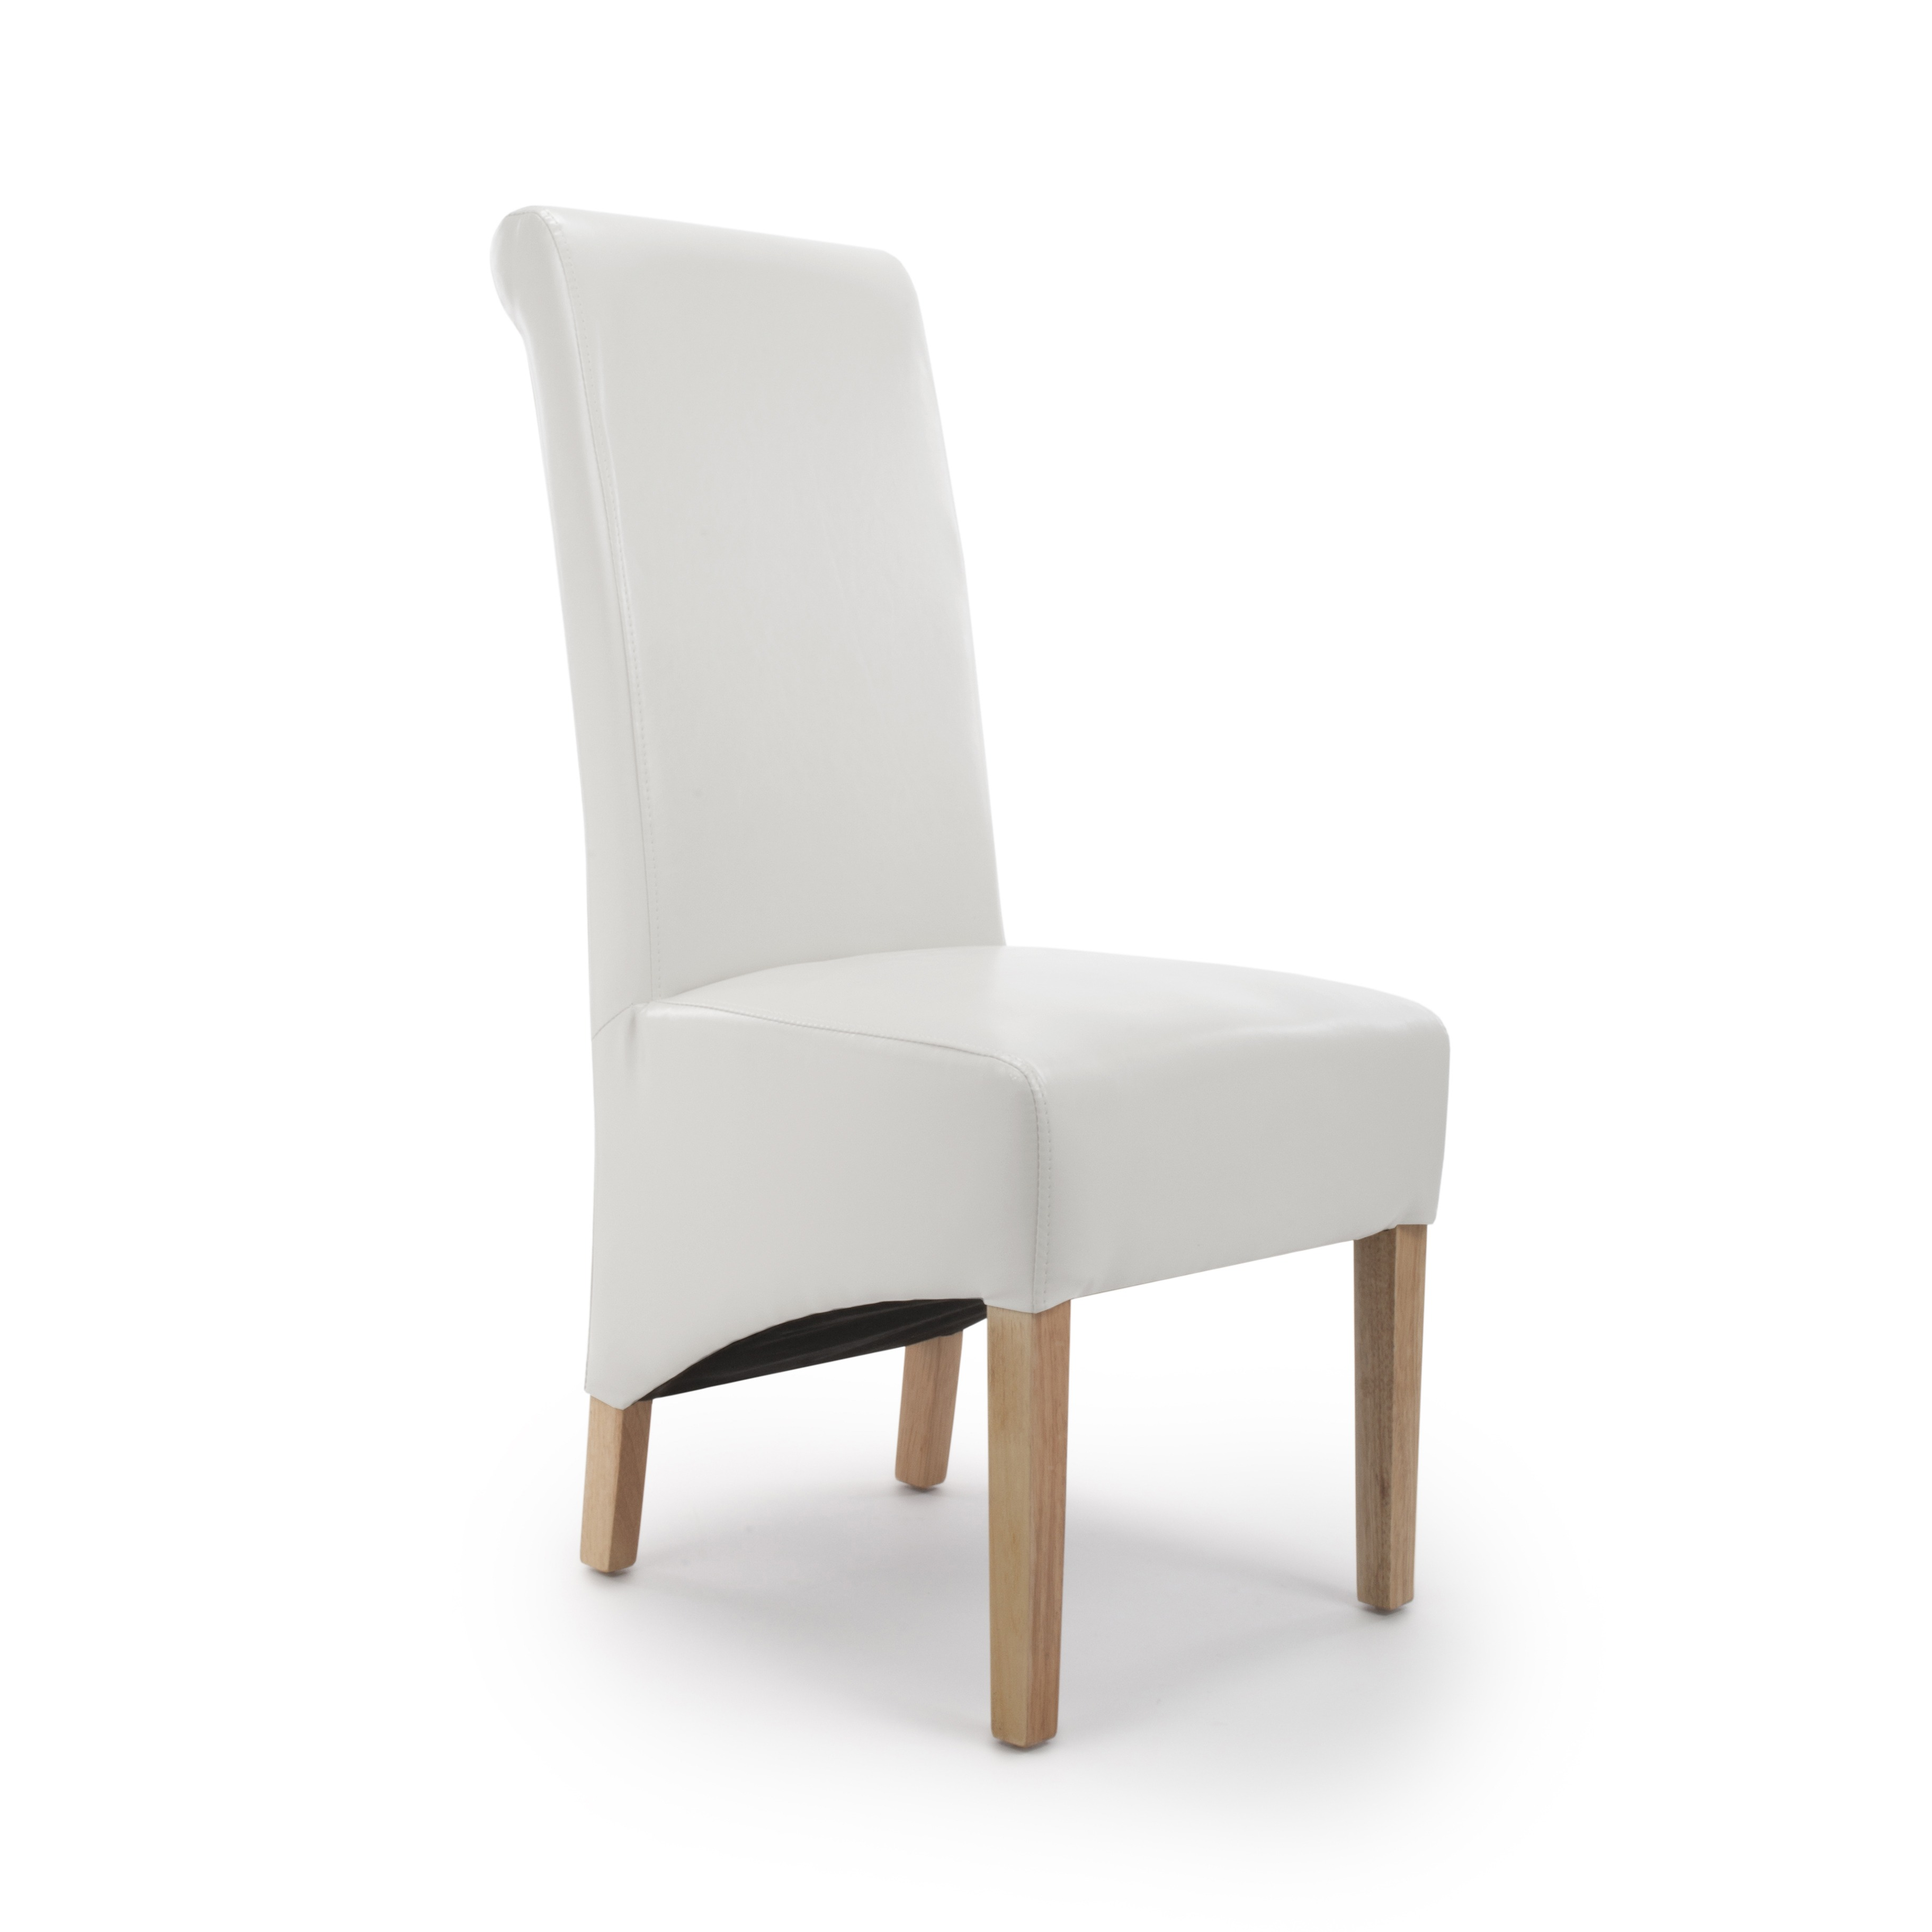 white leather chairs dining gaming chair costco krista shankar